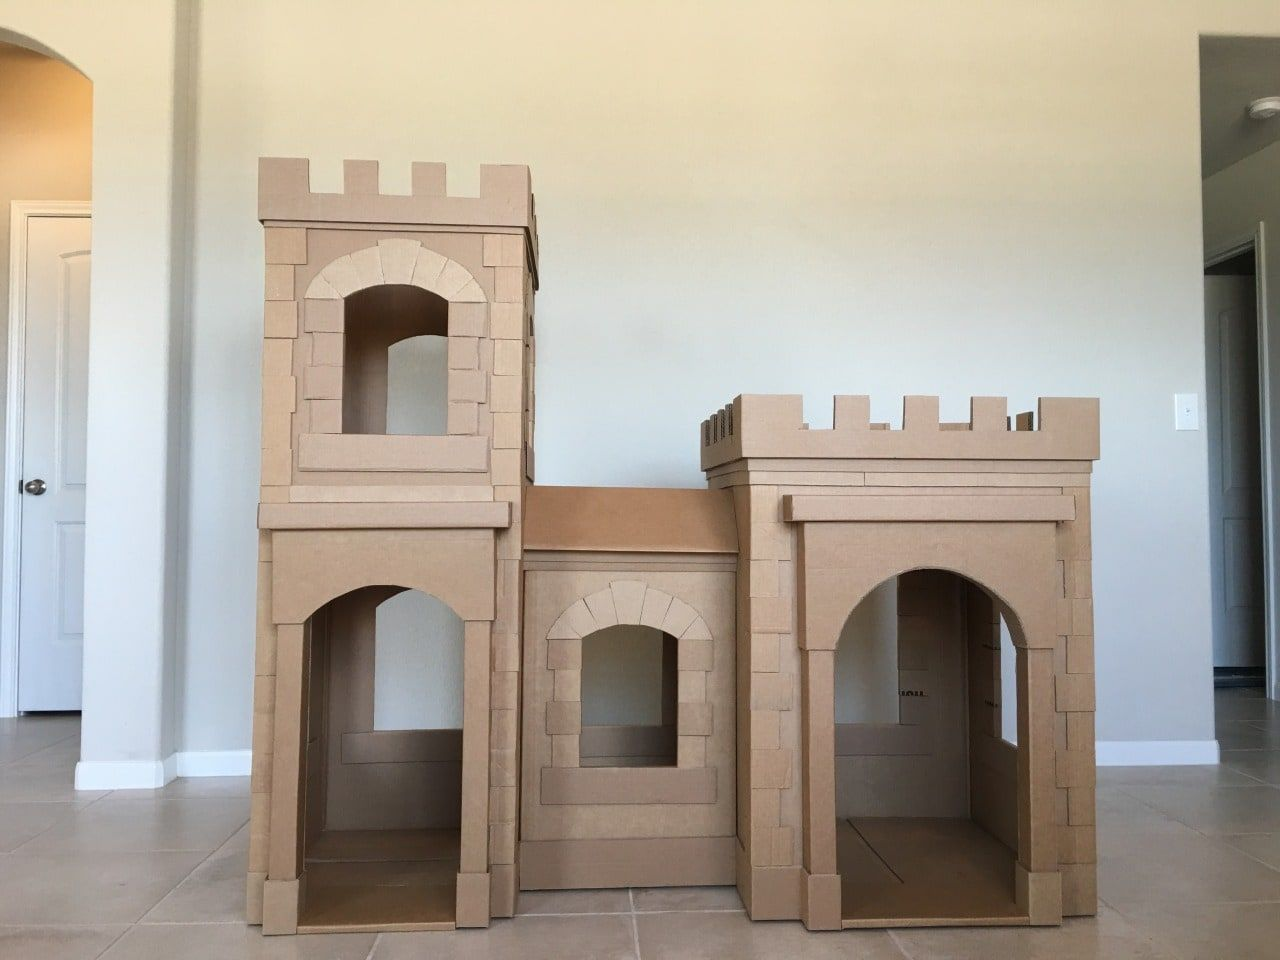 A Kid S Dream Cardboard Castle Made Out Of Boxes Brandon Tran Cardboard Castle Cardboard Houses For Kids Cardboard Box Castle